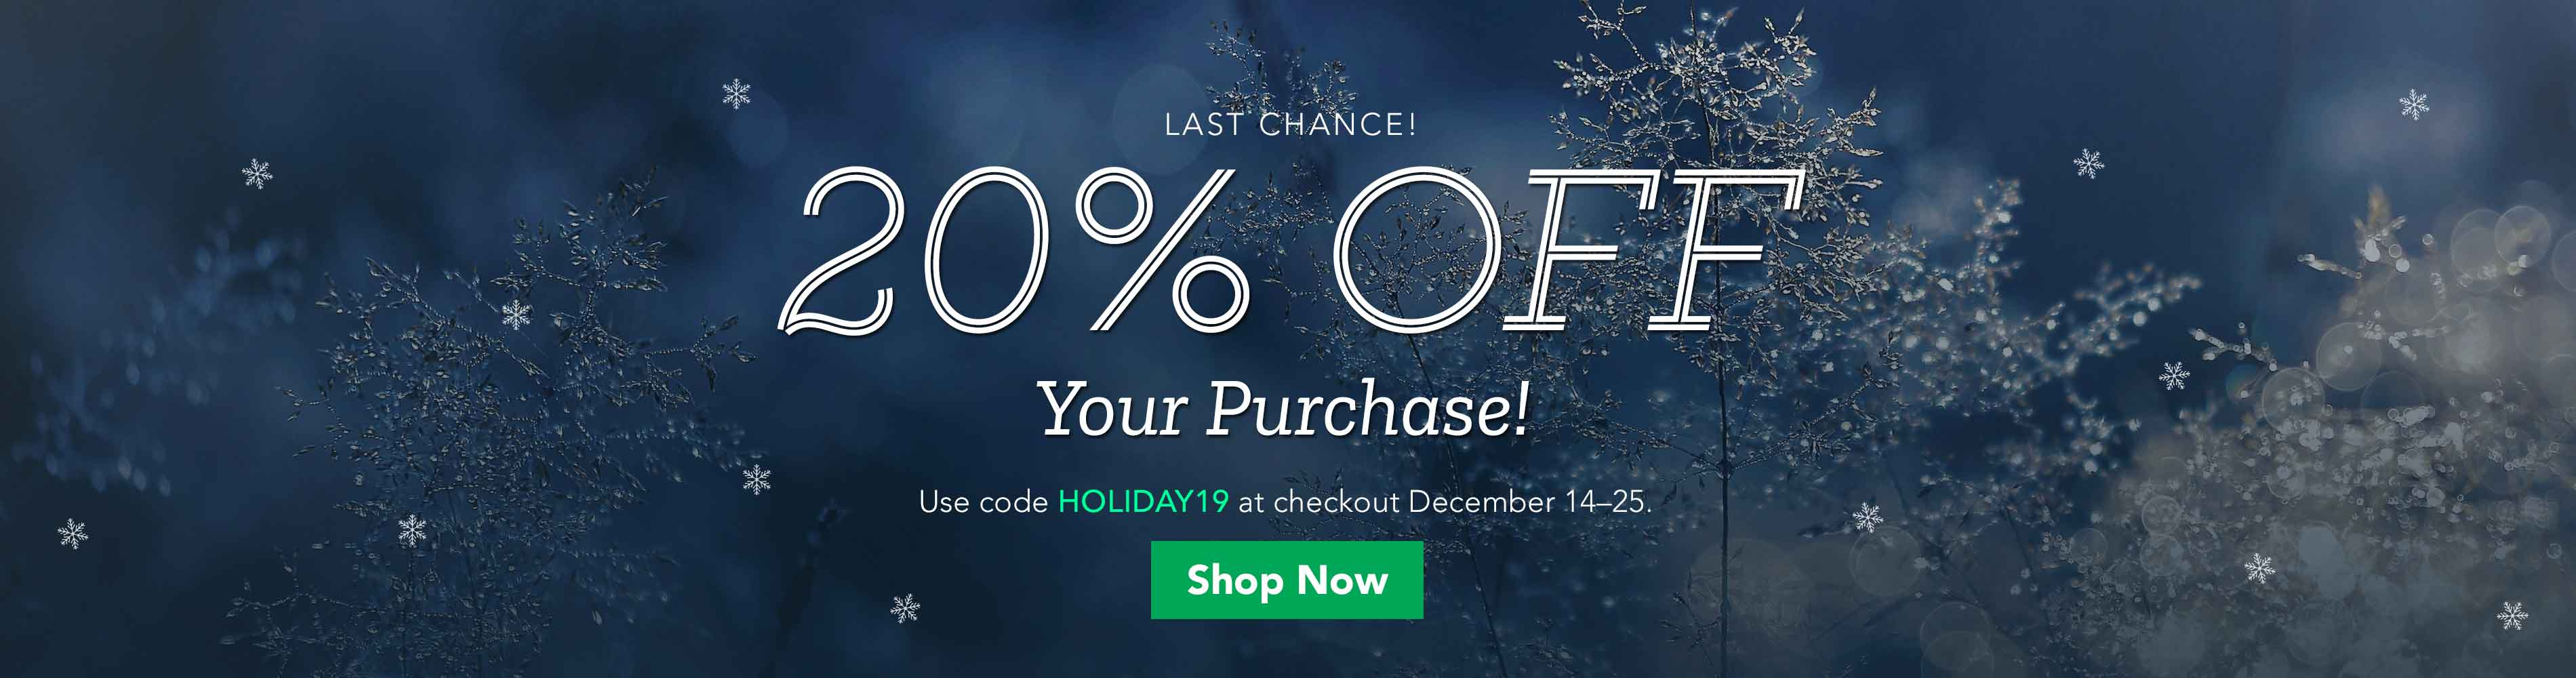 20% Off Your Purchase! Use code HOLIDAY19 at checkout December 14-25, 2019.